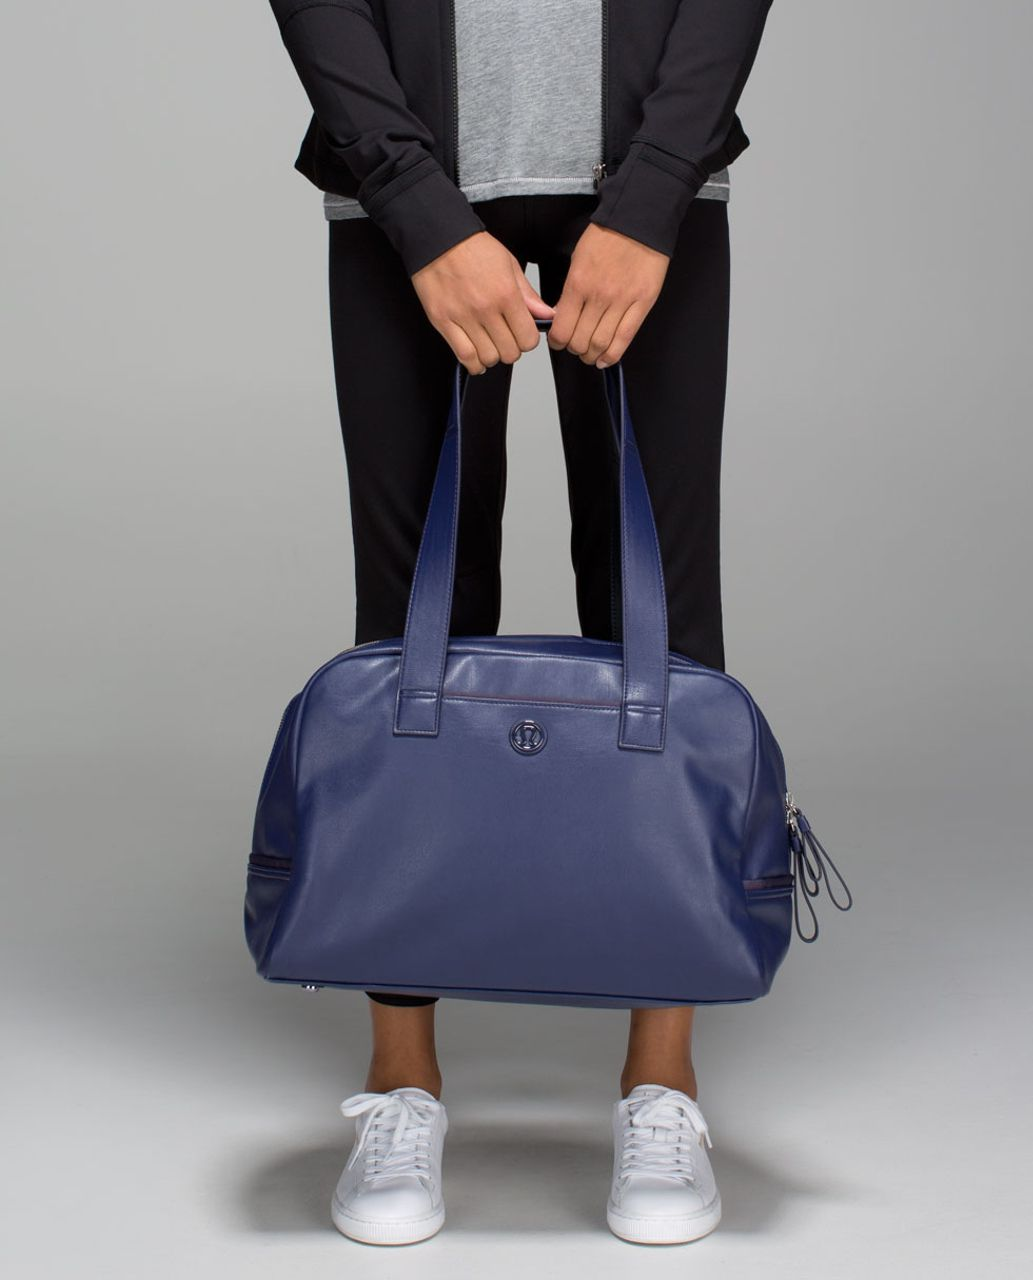 Lululemon Urban Sanctuary Bag - Nightfall / Deep Coal